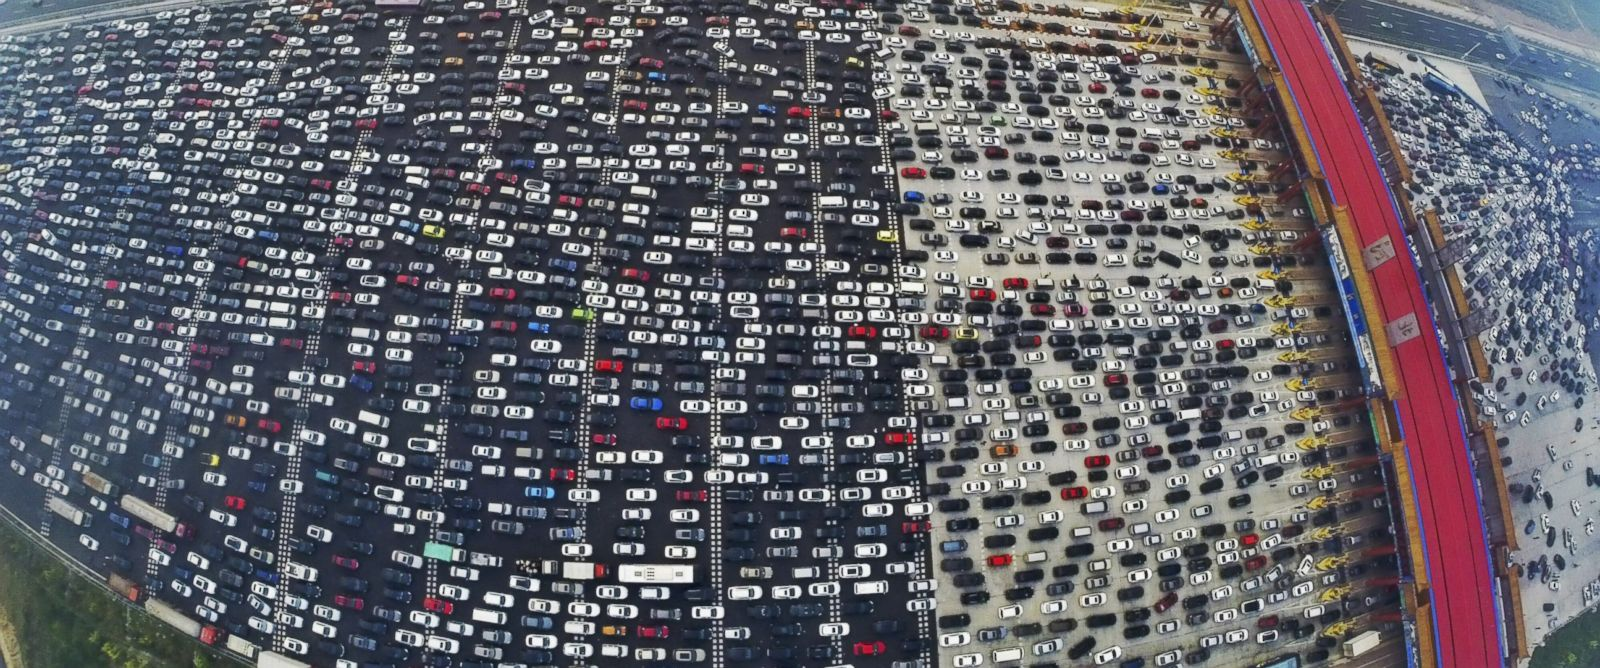 RT_beijing_traffic_2_jt_151008_12x5_1600